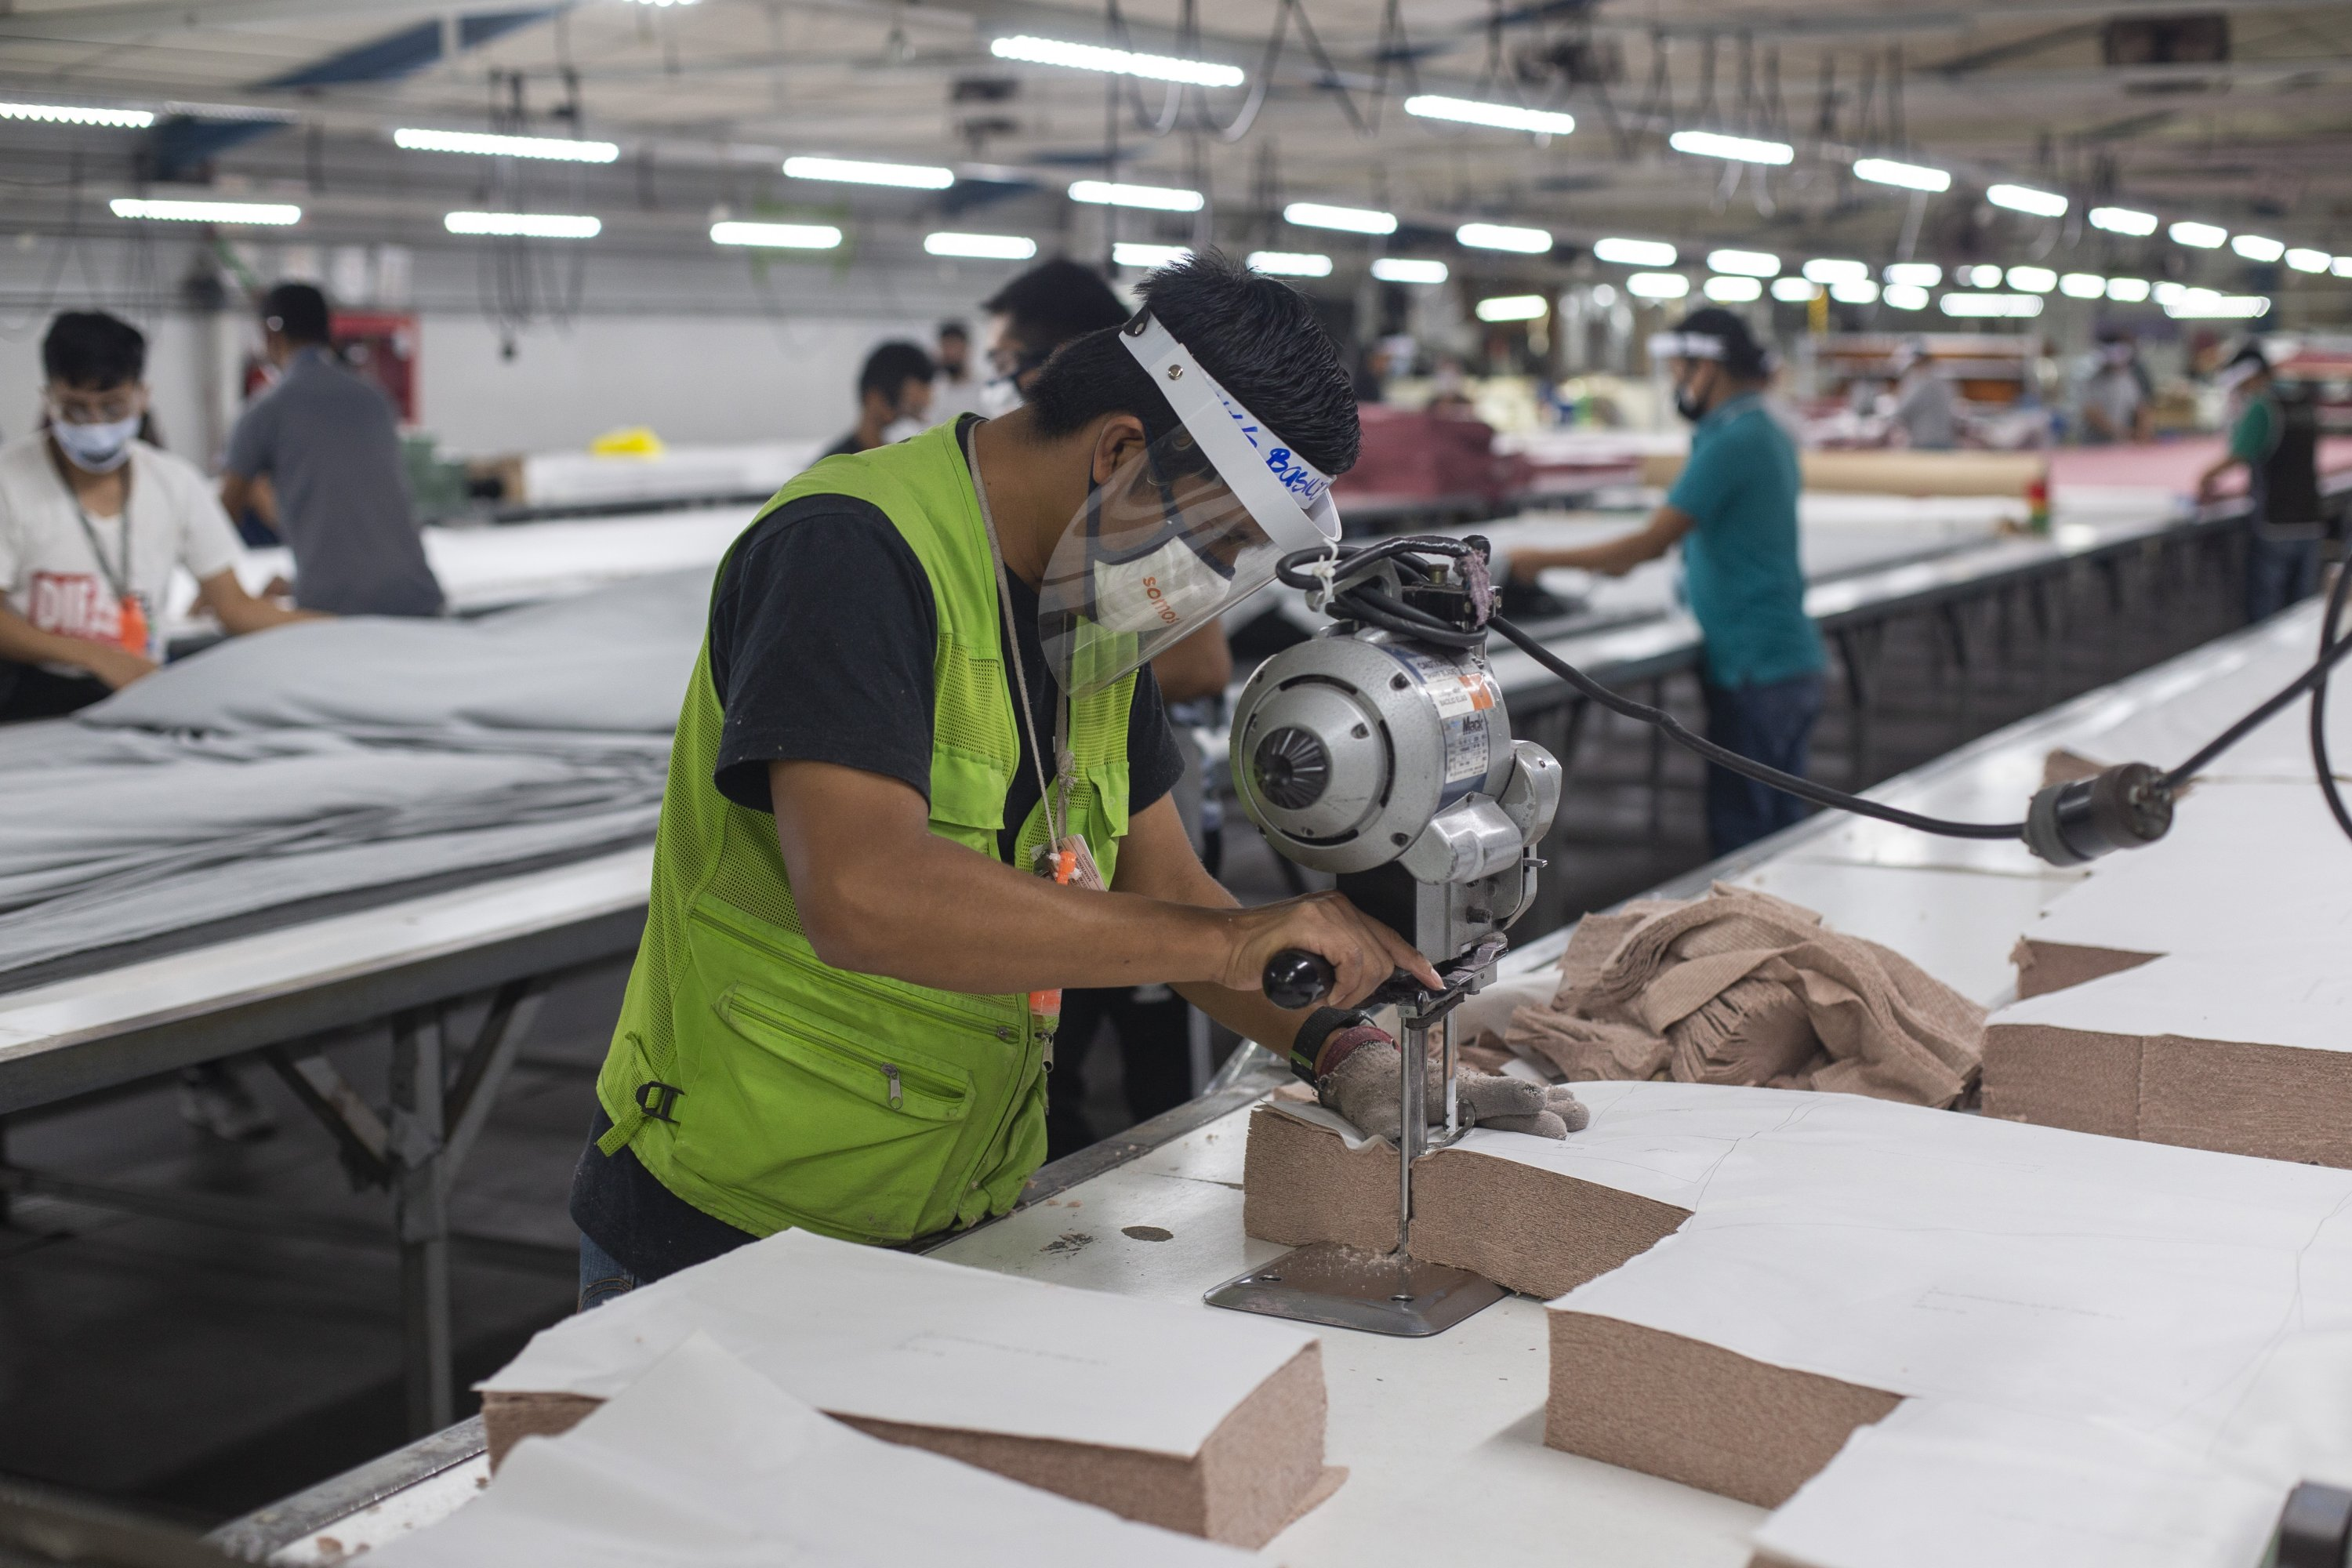 A worker, wearing a protective face mask and face shield, cuts T-shirt sections at the Korean-owned firm K.P. Textil in San Miguel Petapa, Guatemala, July 10, 2020. (AP Photo)